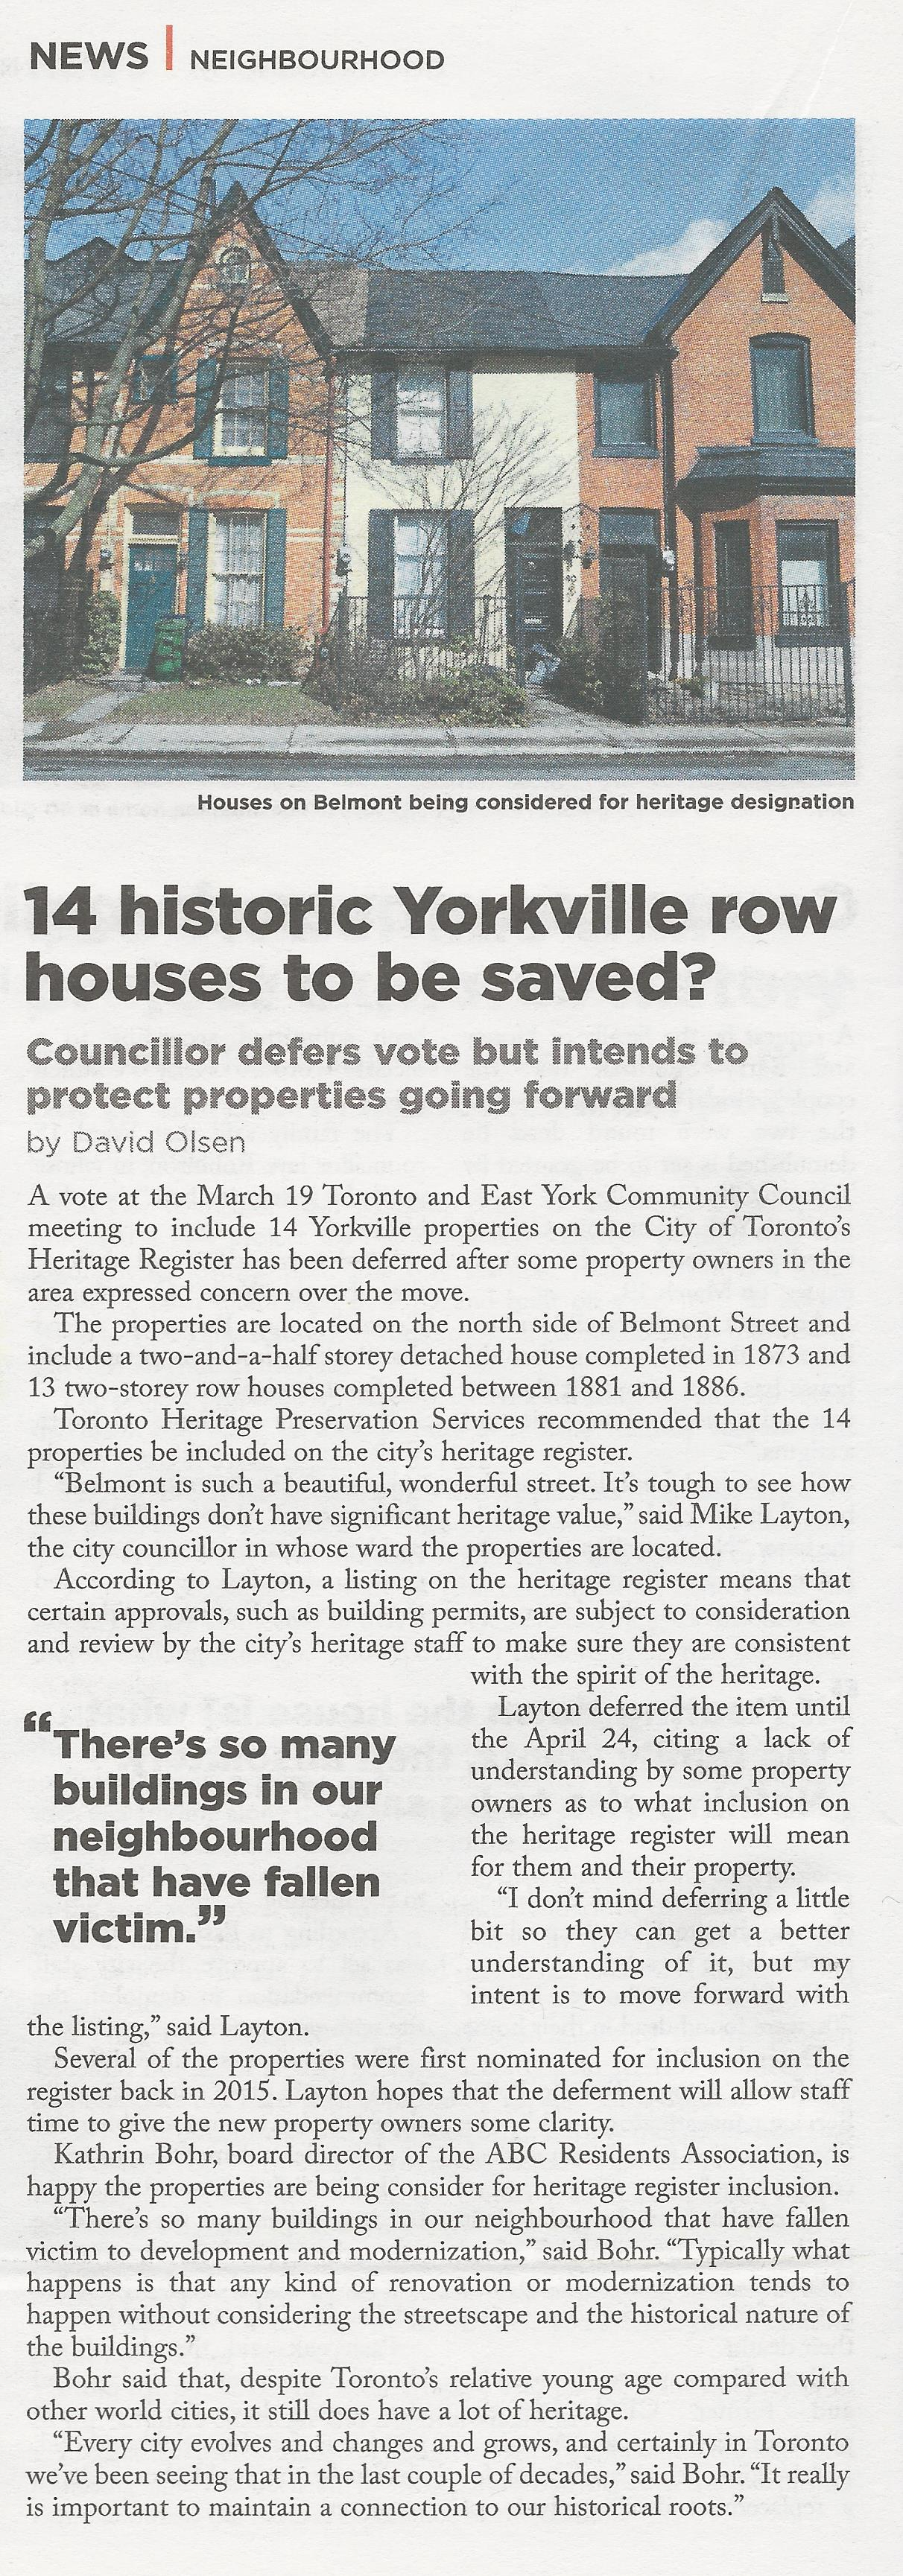 historic houses 14 yorkville to be saved.jpg